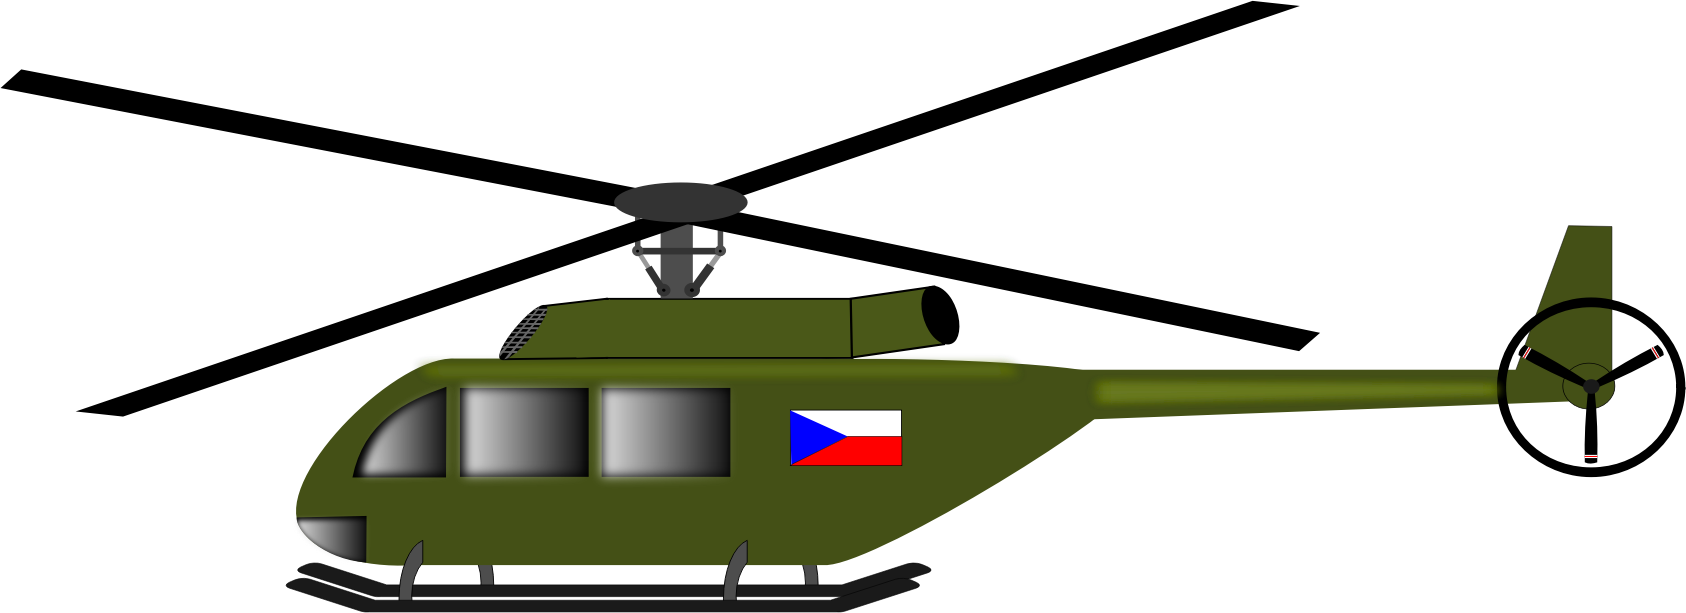 Free Military Helicopter Cliparts, Download Free Clip Art, Free Clip.